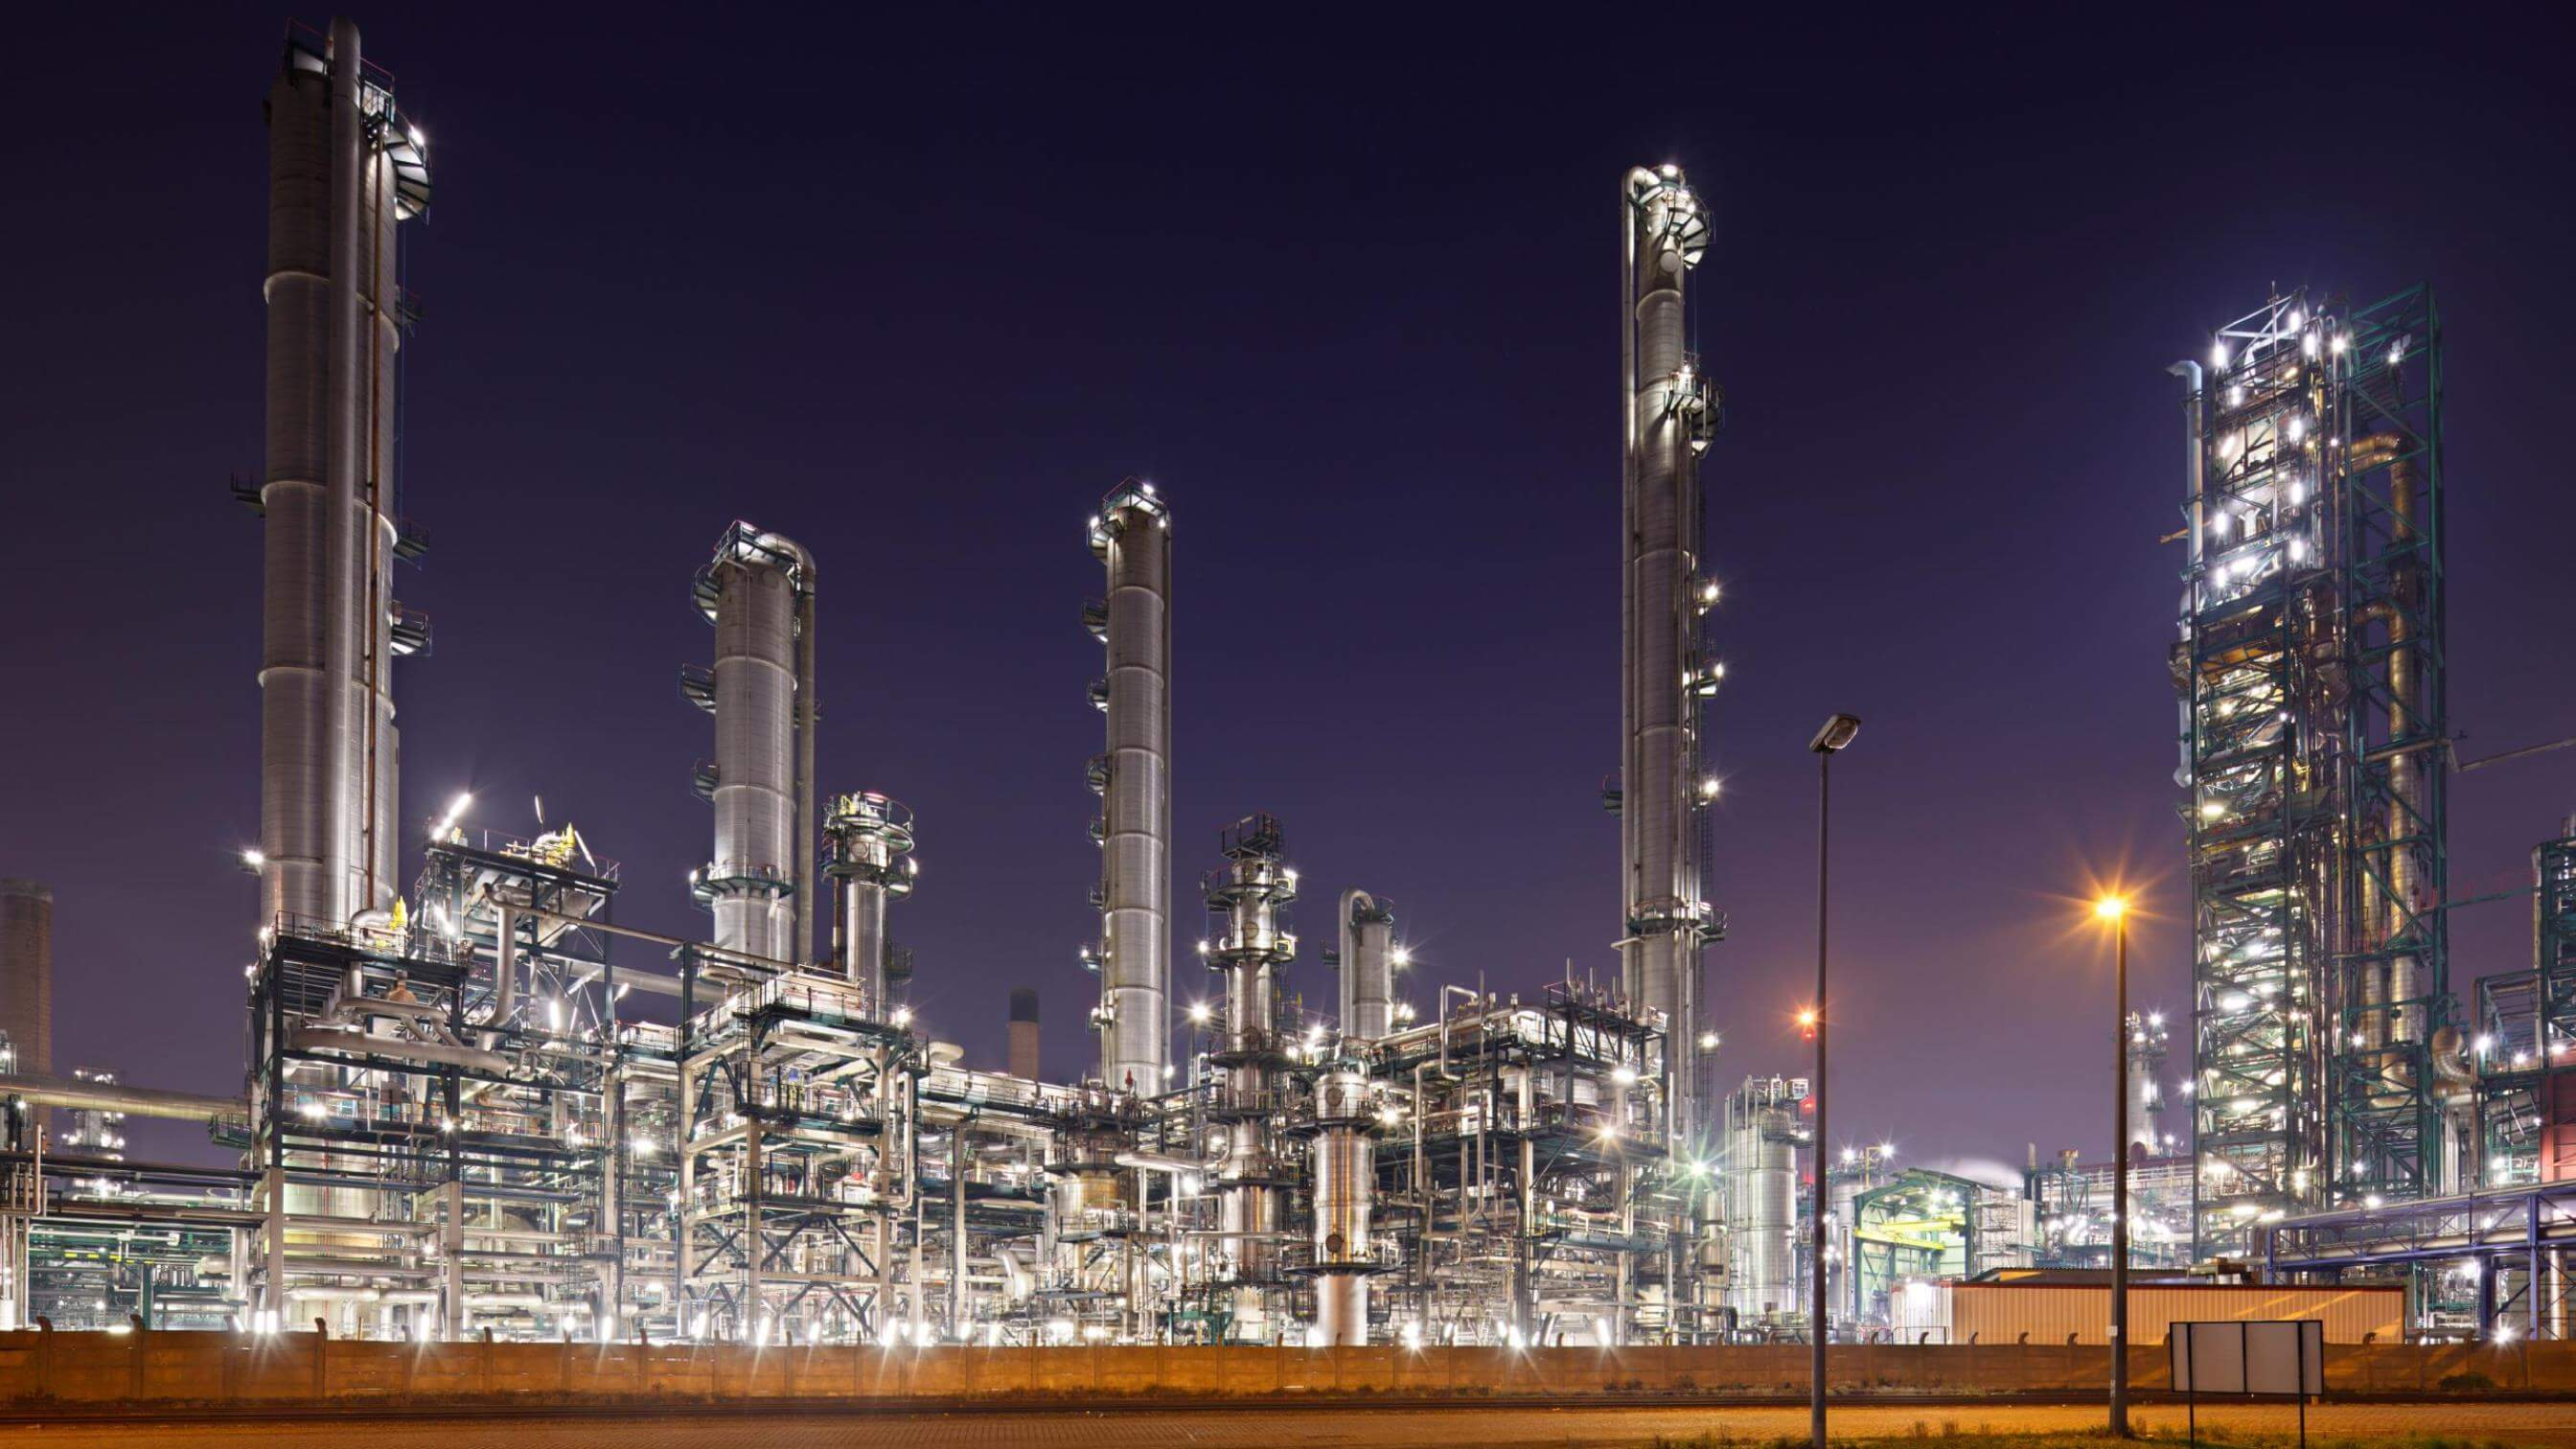 USA petrochemical refinery at night